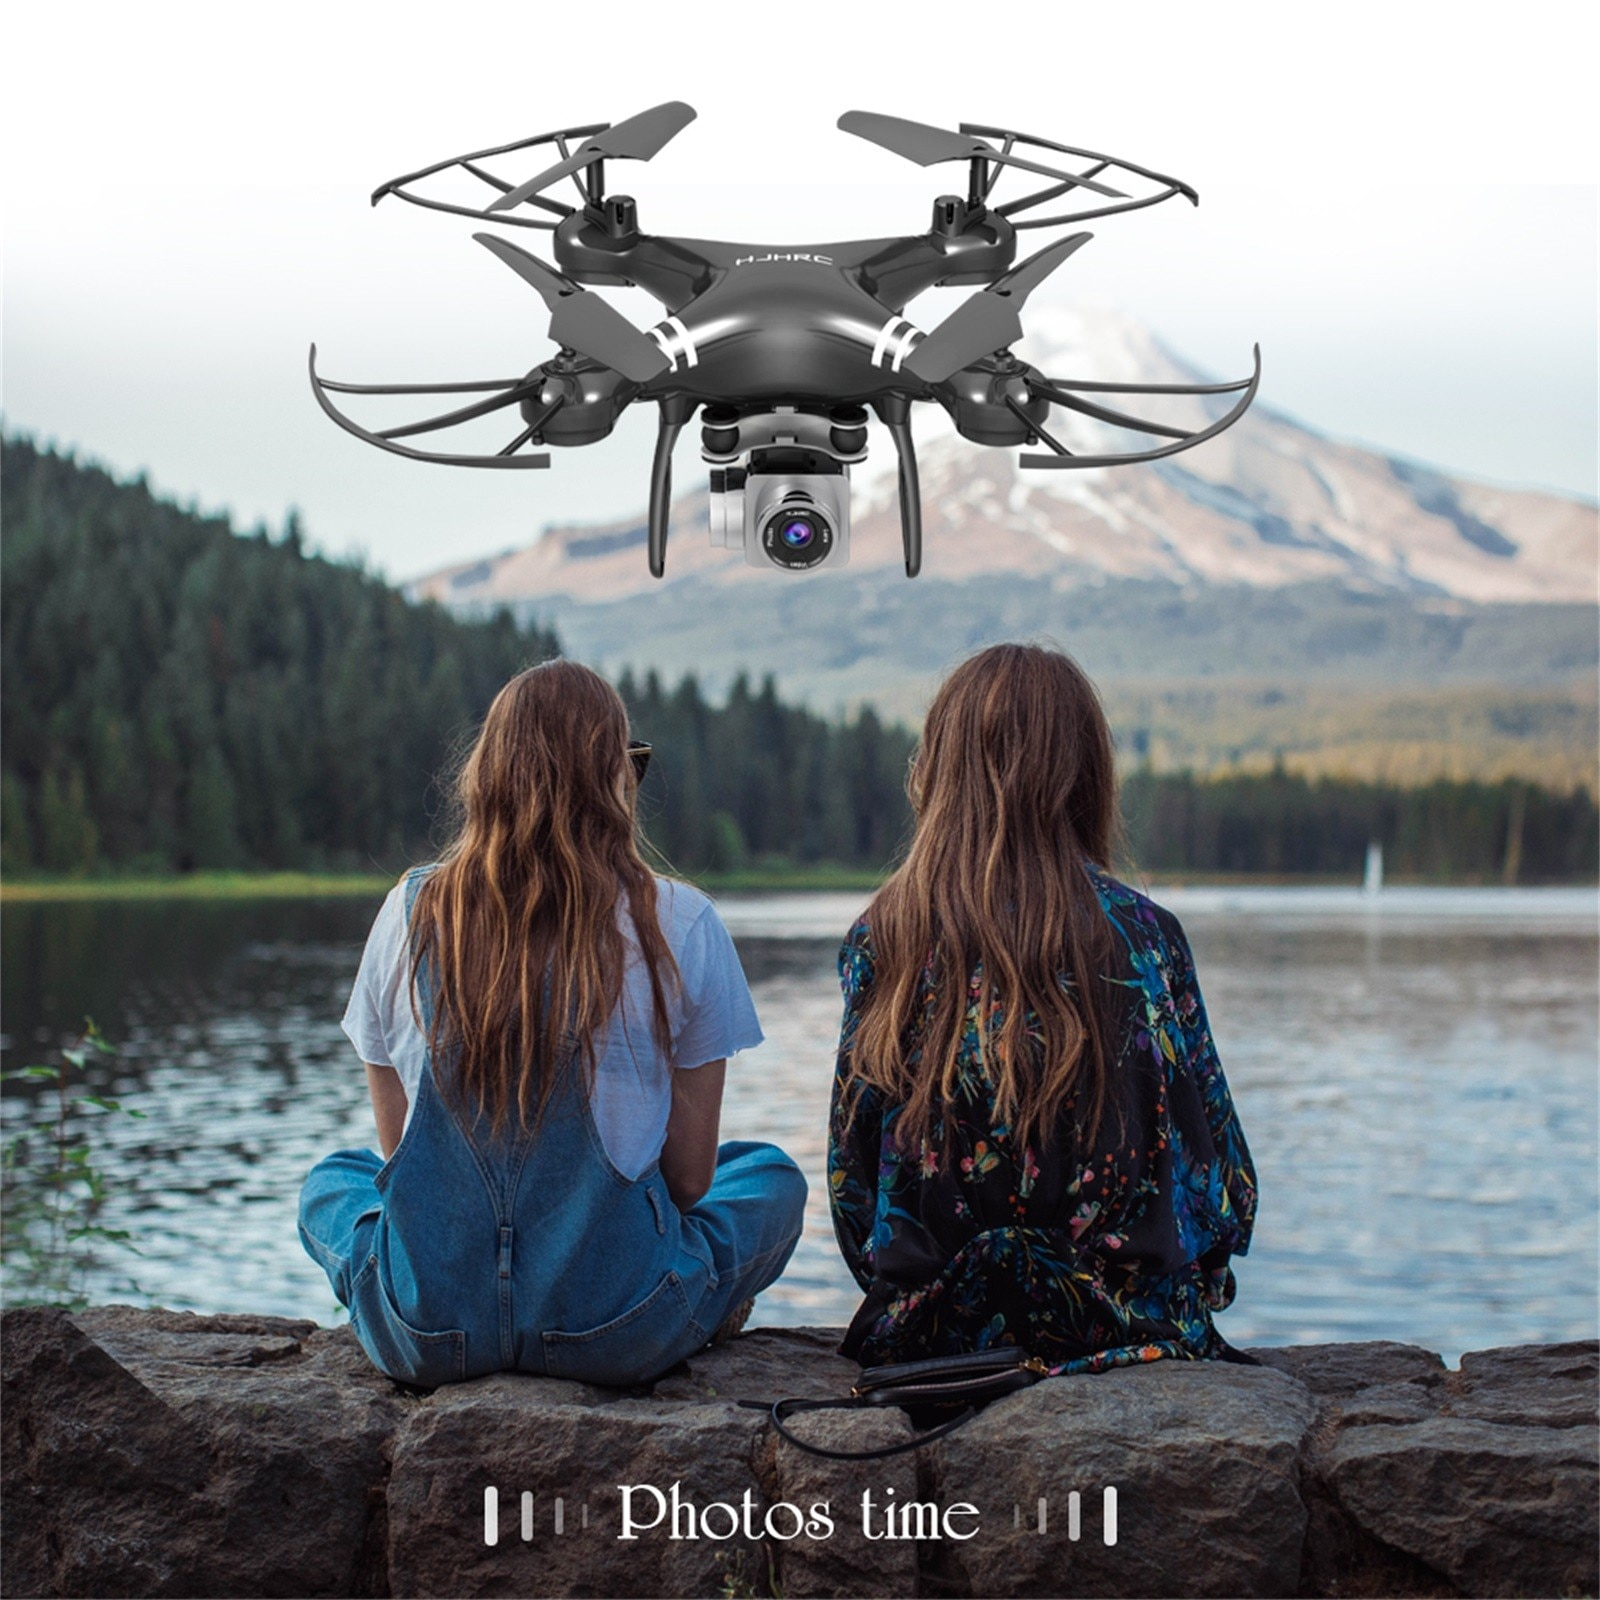 Hdcf3735945b74f9ea21f3e4349852e70O - Hjhrc Four-axis Aerial Photography Aircraft Drone With Camera Hd 4k Wifi Fpv Foldable Drone Height Holding Headless Quadcopter